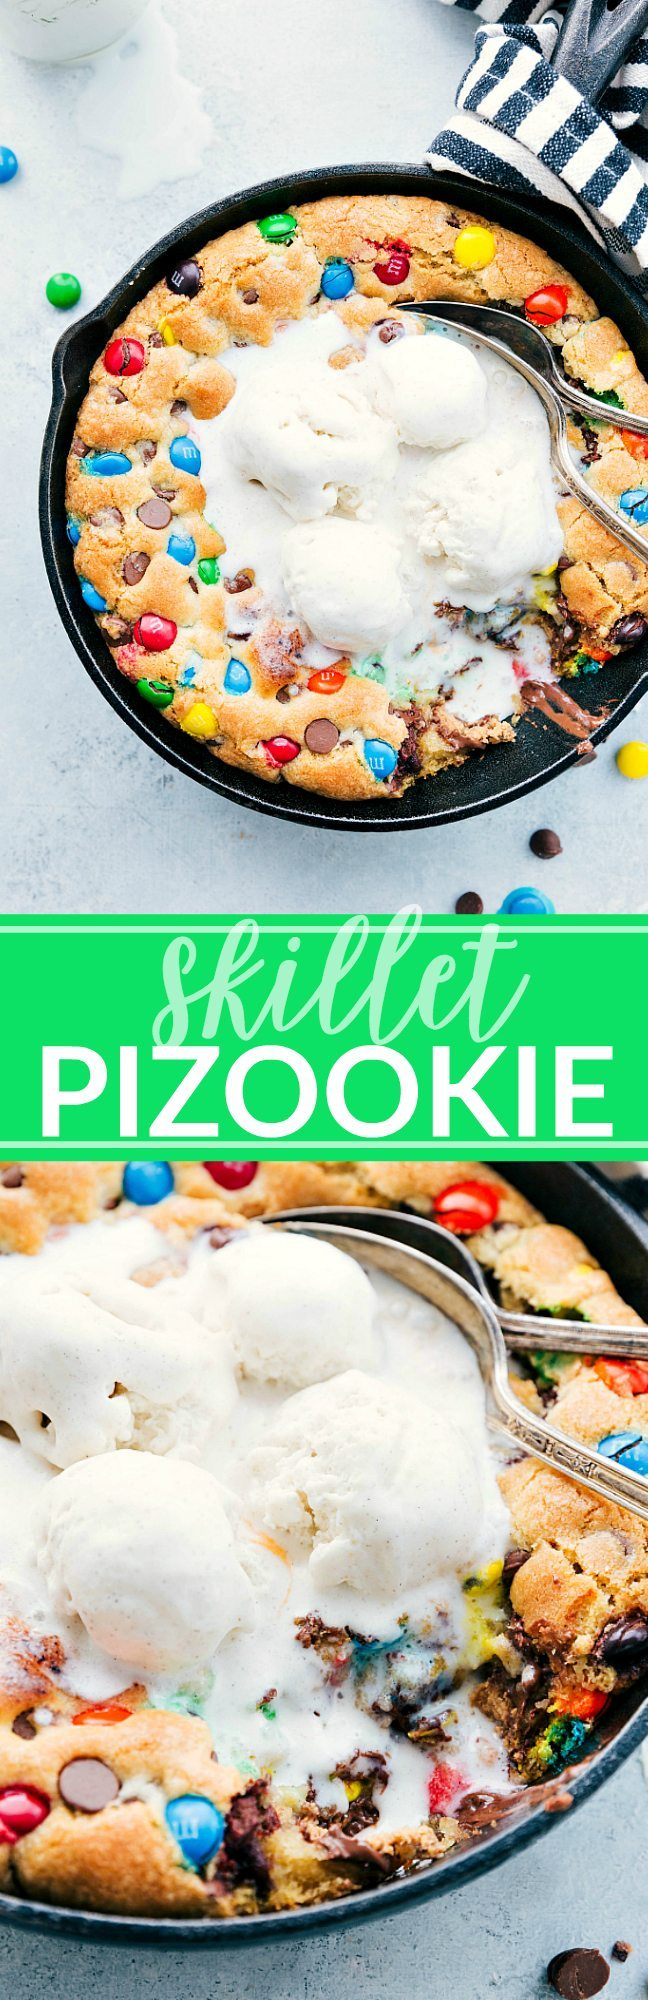 The ultimate BEST EVER PIZOOKIE! This skillet cookie is so easy to make and delicious! | chelseasmessyapron.com | #dessert #skillet #cookie #pizookie #kidfriendly #cazookie #easy #quick #chocolate #valentines #treat